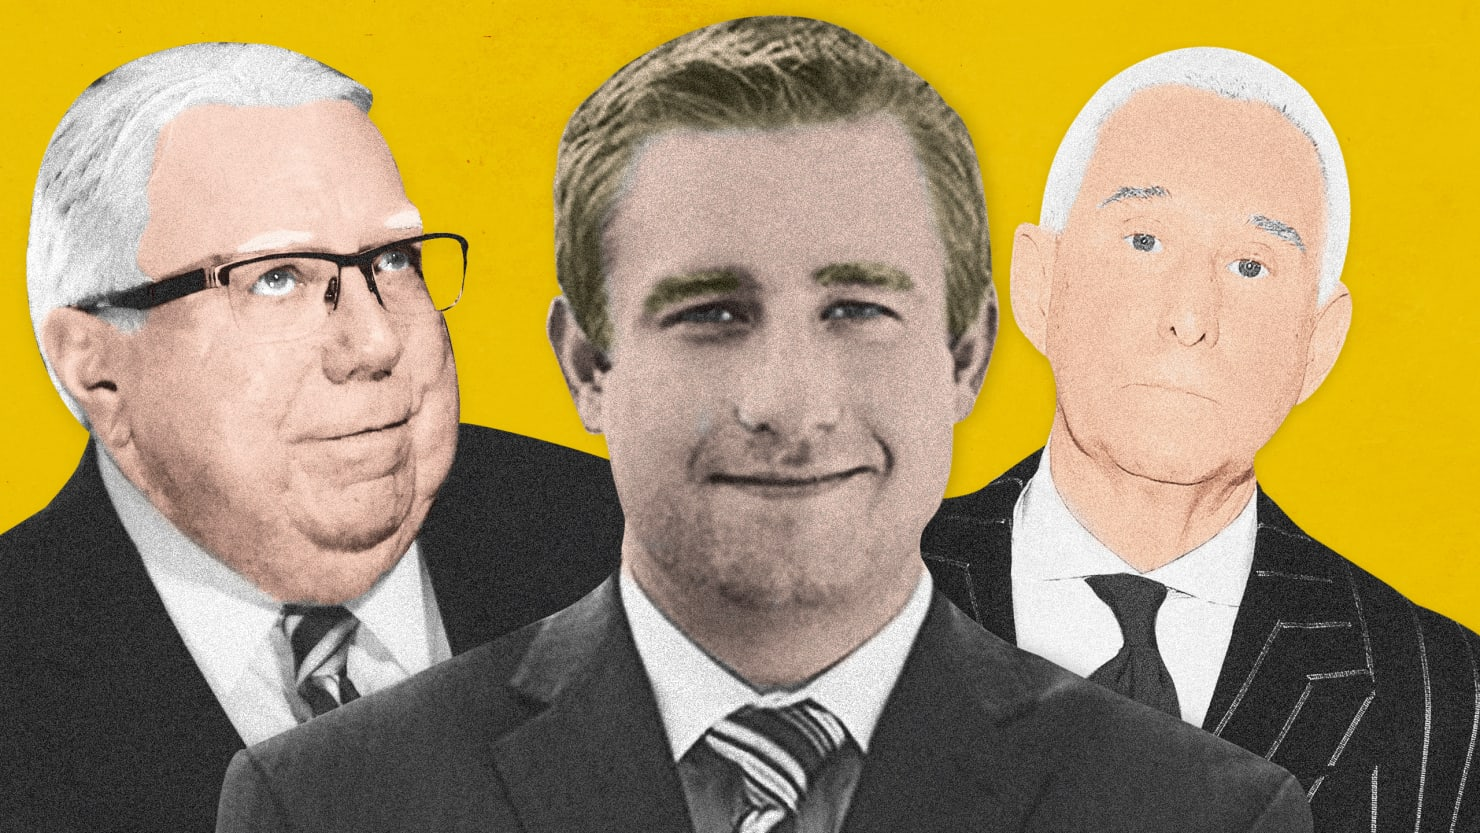 Roger Stone and Jerome Corsi Pushed Seth Rich Lie After Privately Admitting Hackers Stole DNC Emails